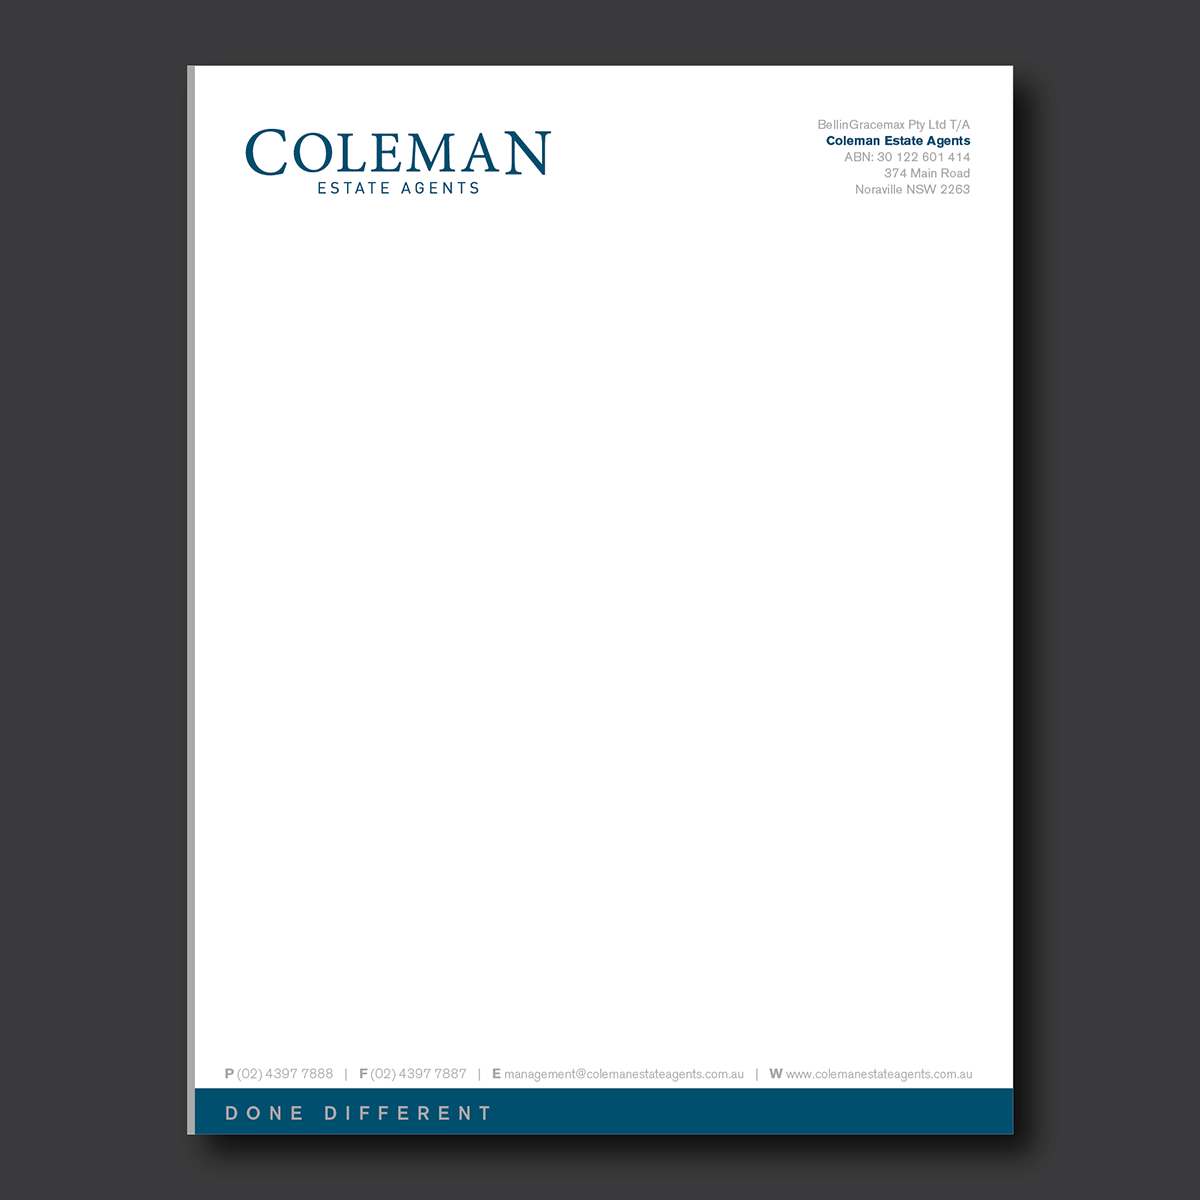 It Company Letterhead Design For Coleman Estate Agents By